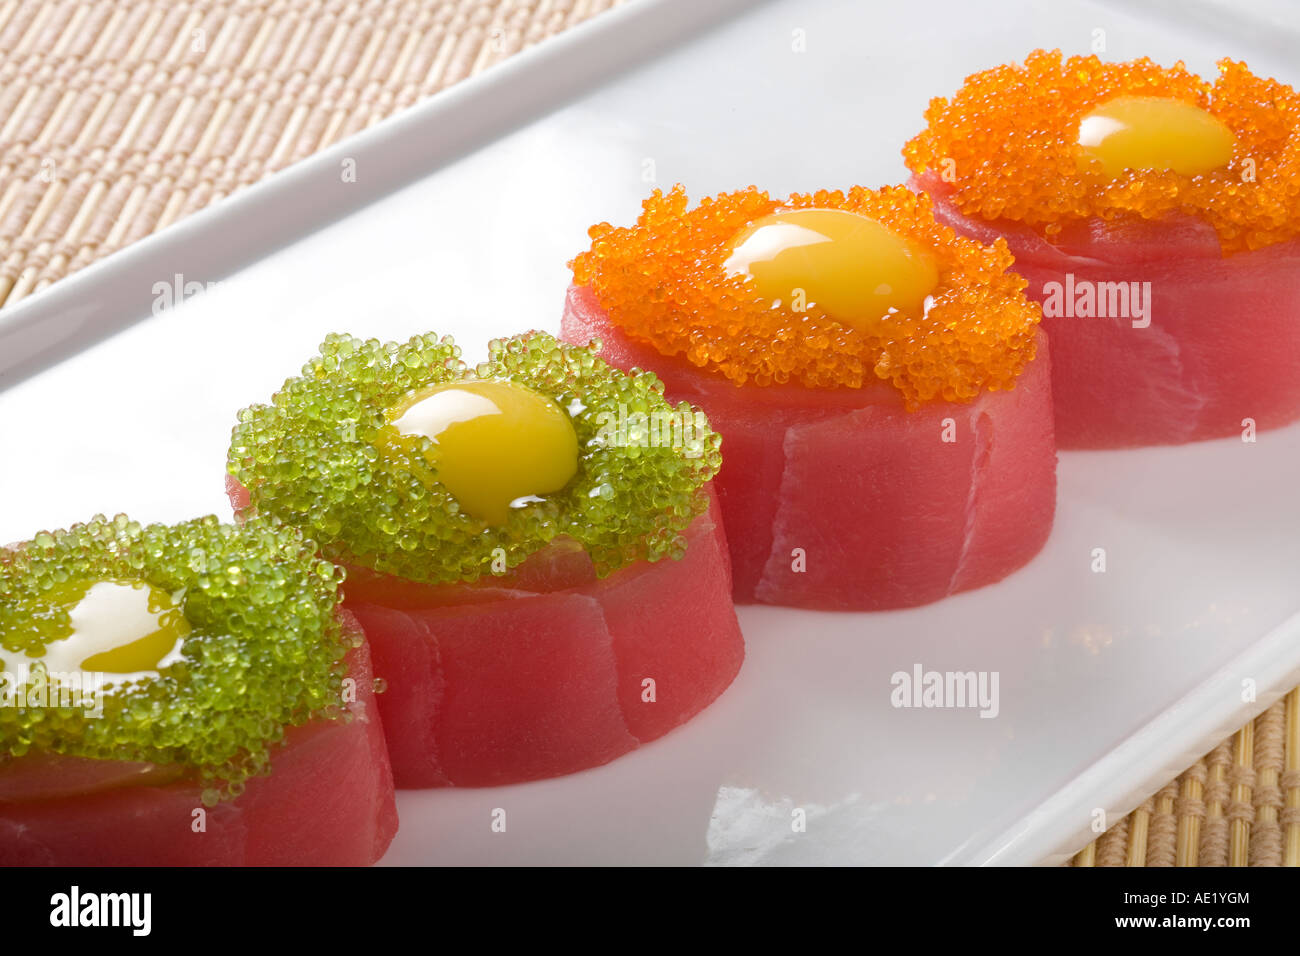 A Japanese dish on a plate consisting of 4 pieces of sushi. - Stock Image